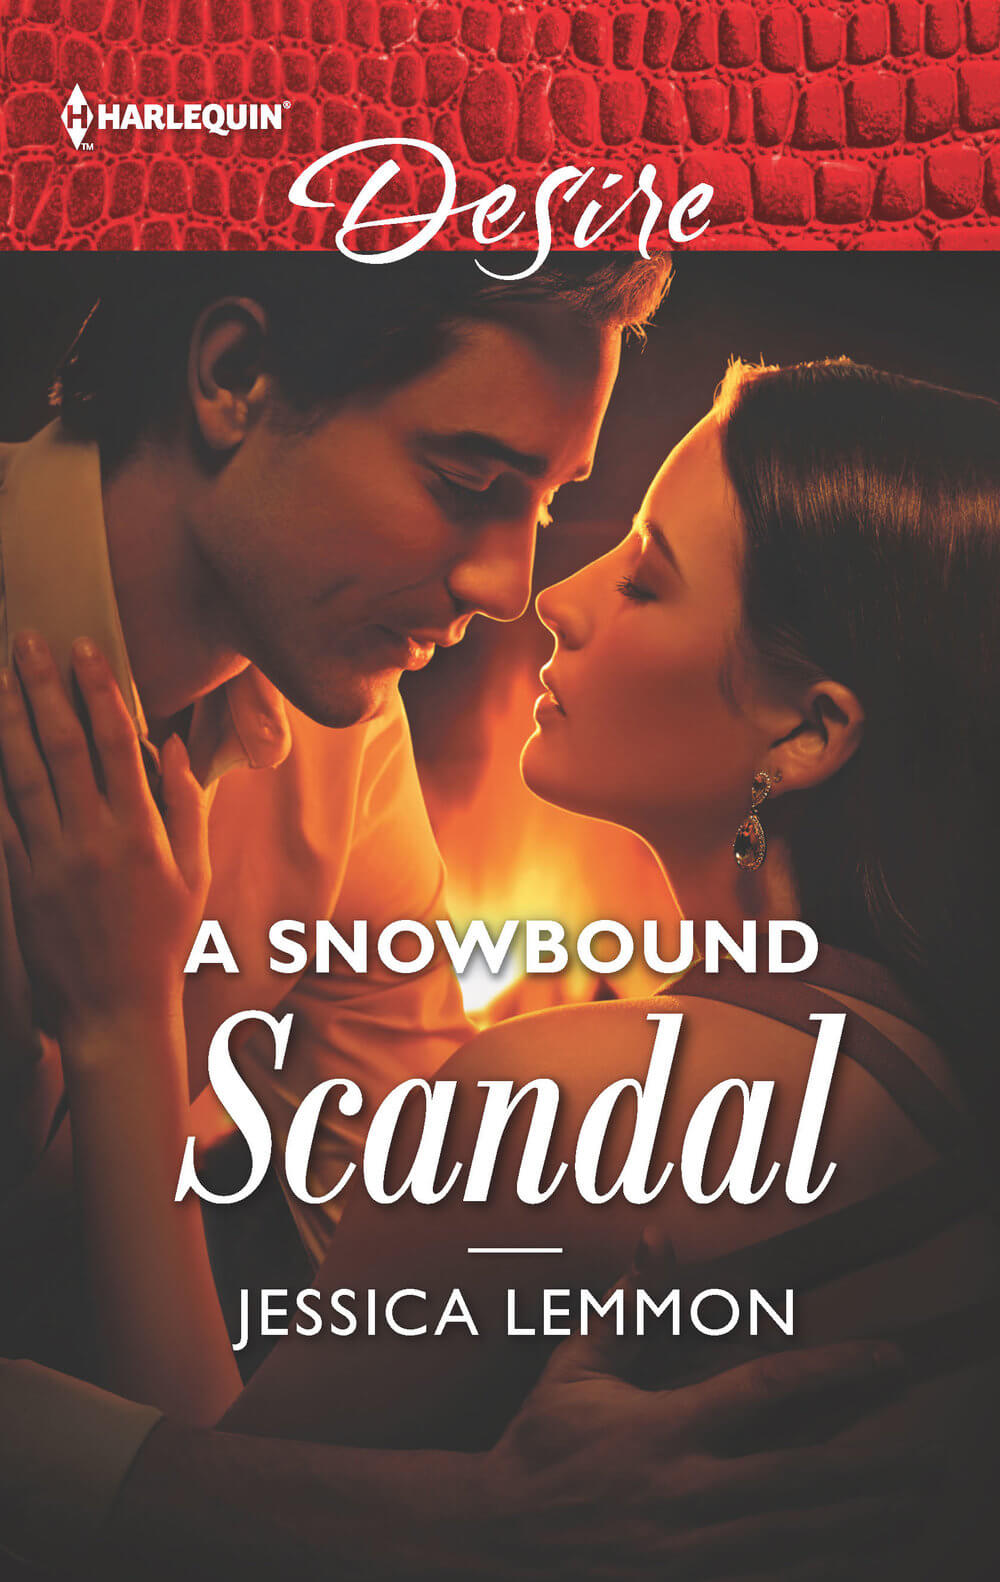 A Snowbound Scandal by Jessica Lemmon